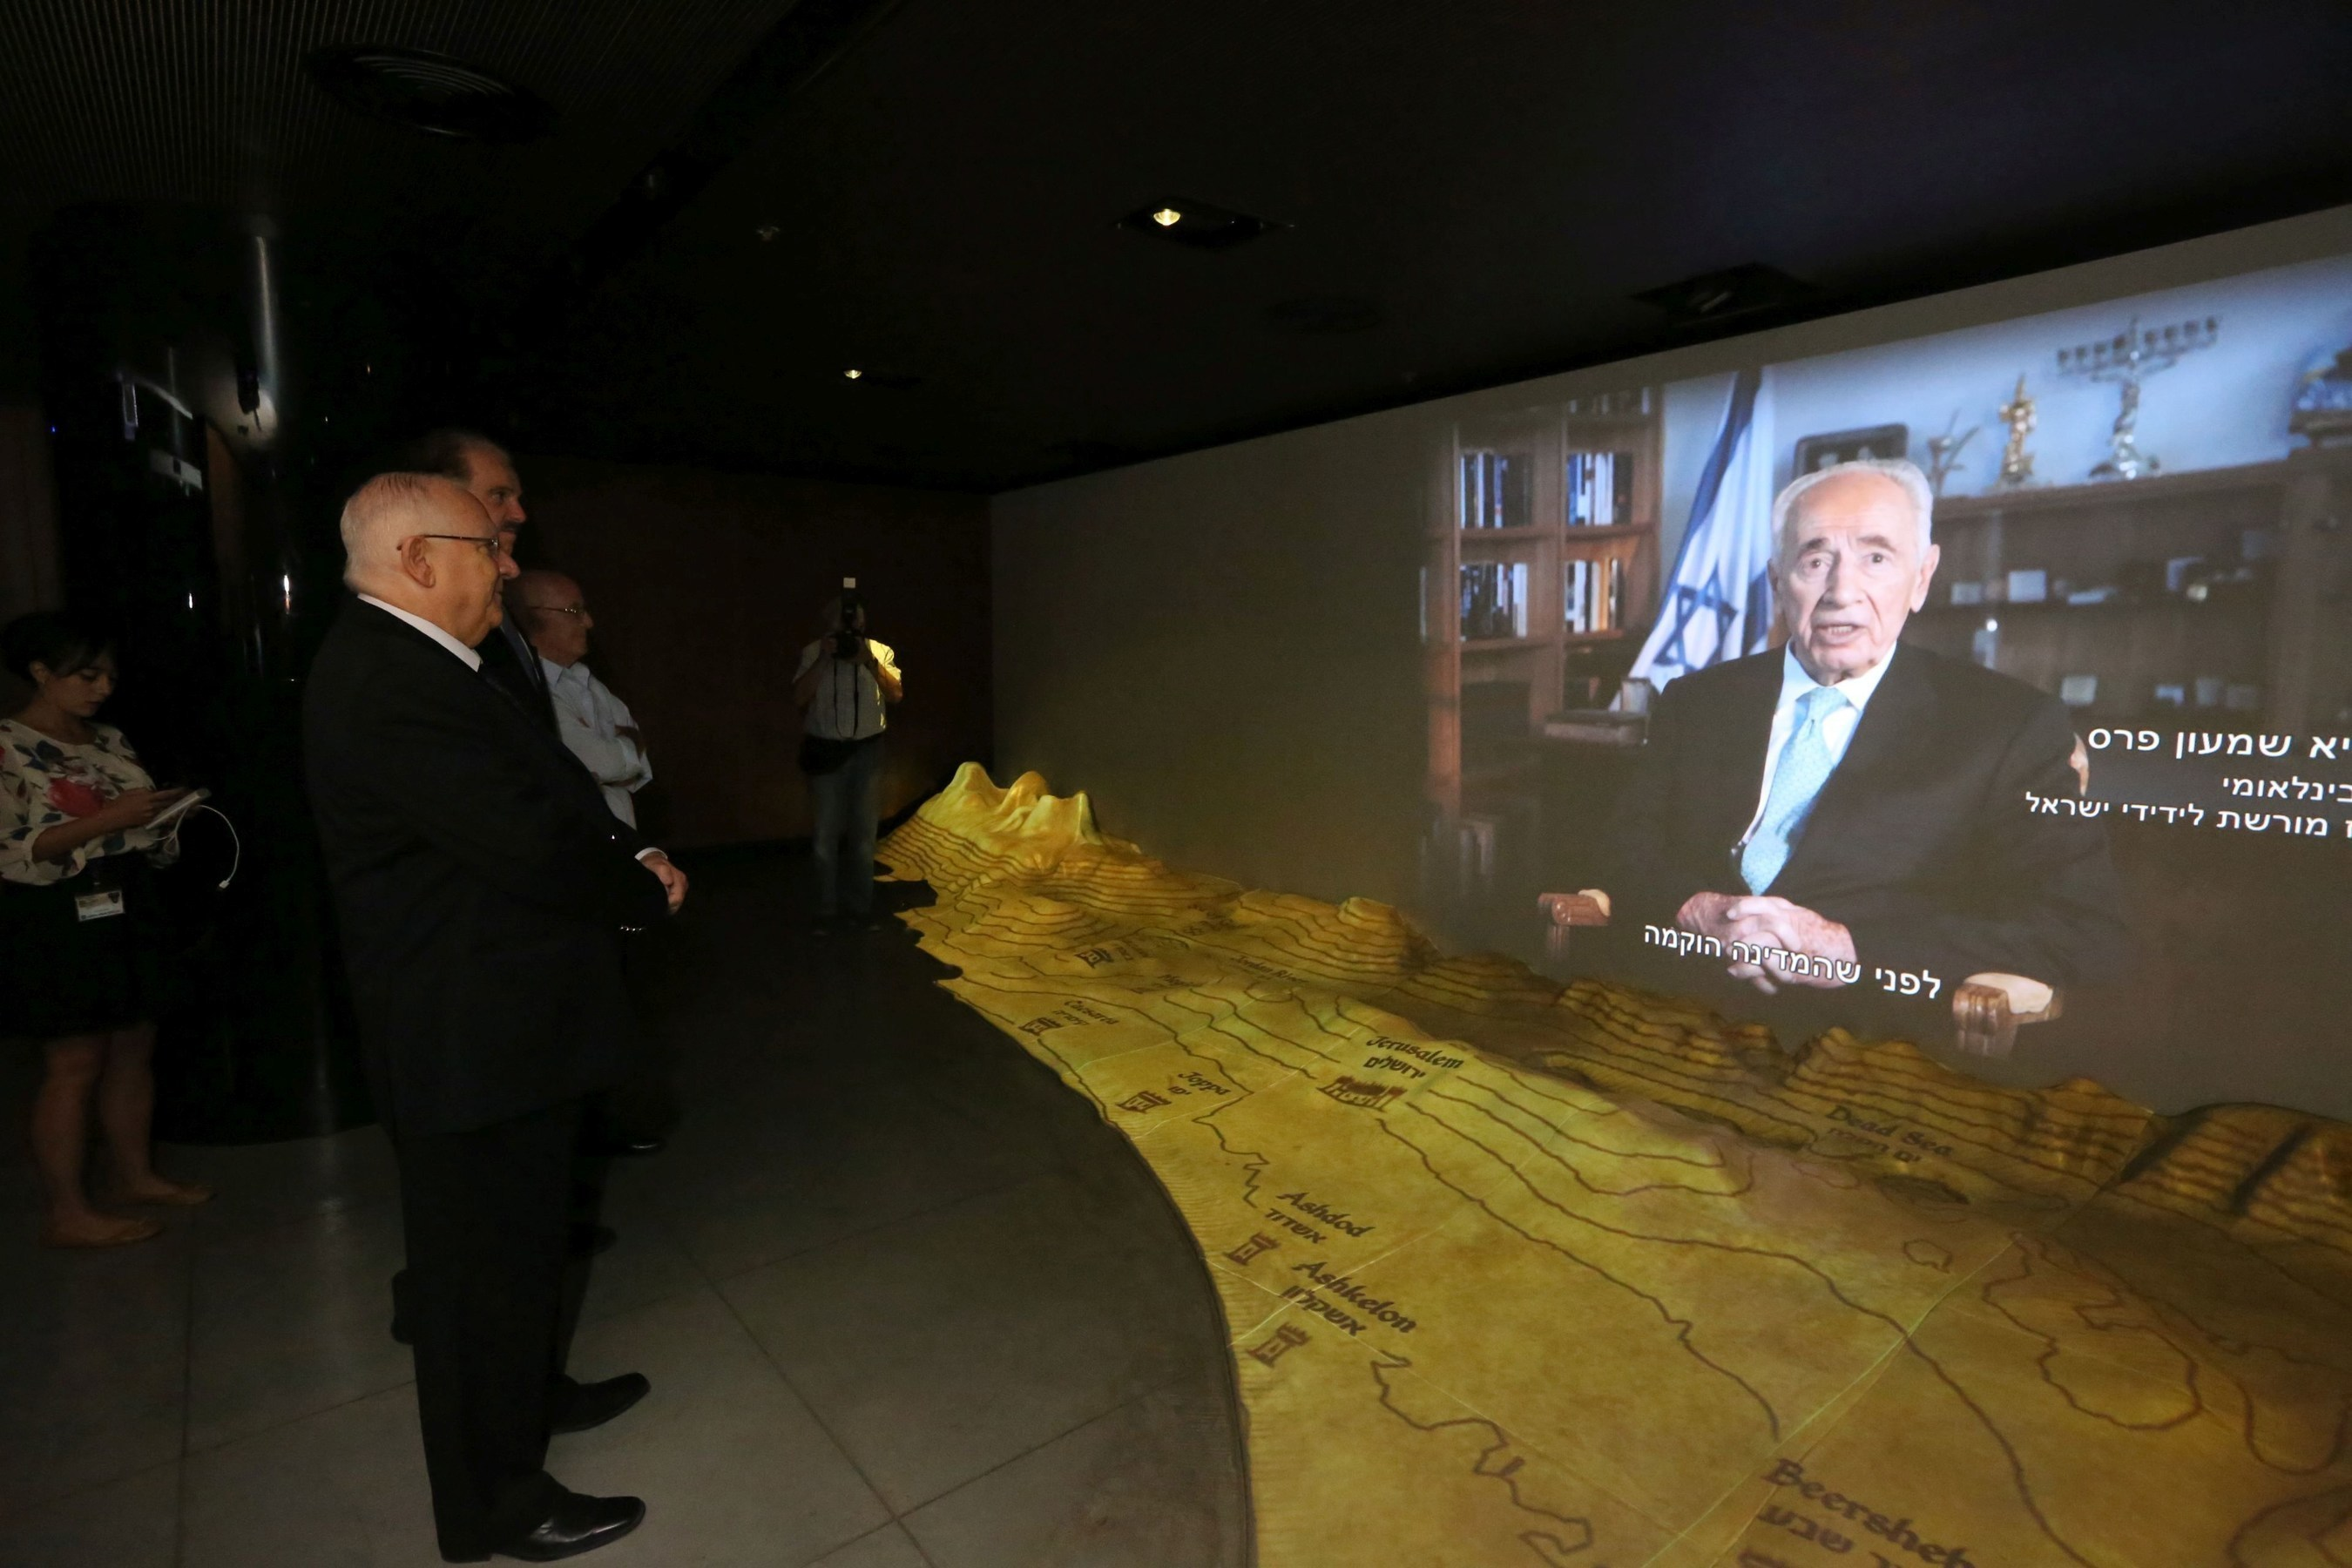 Israel's President Reuven Rivlin Visits the Friends of Zion Museum in Jerusalem